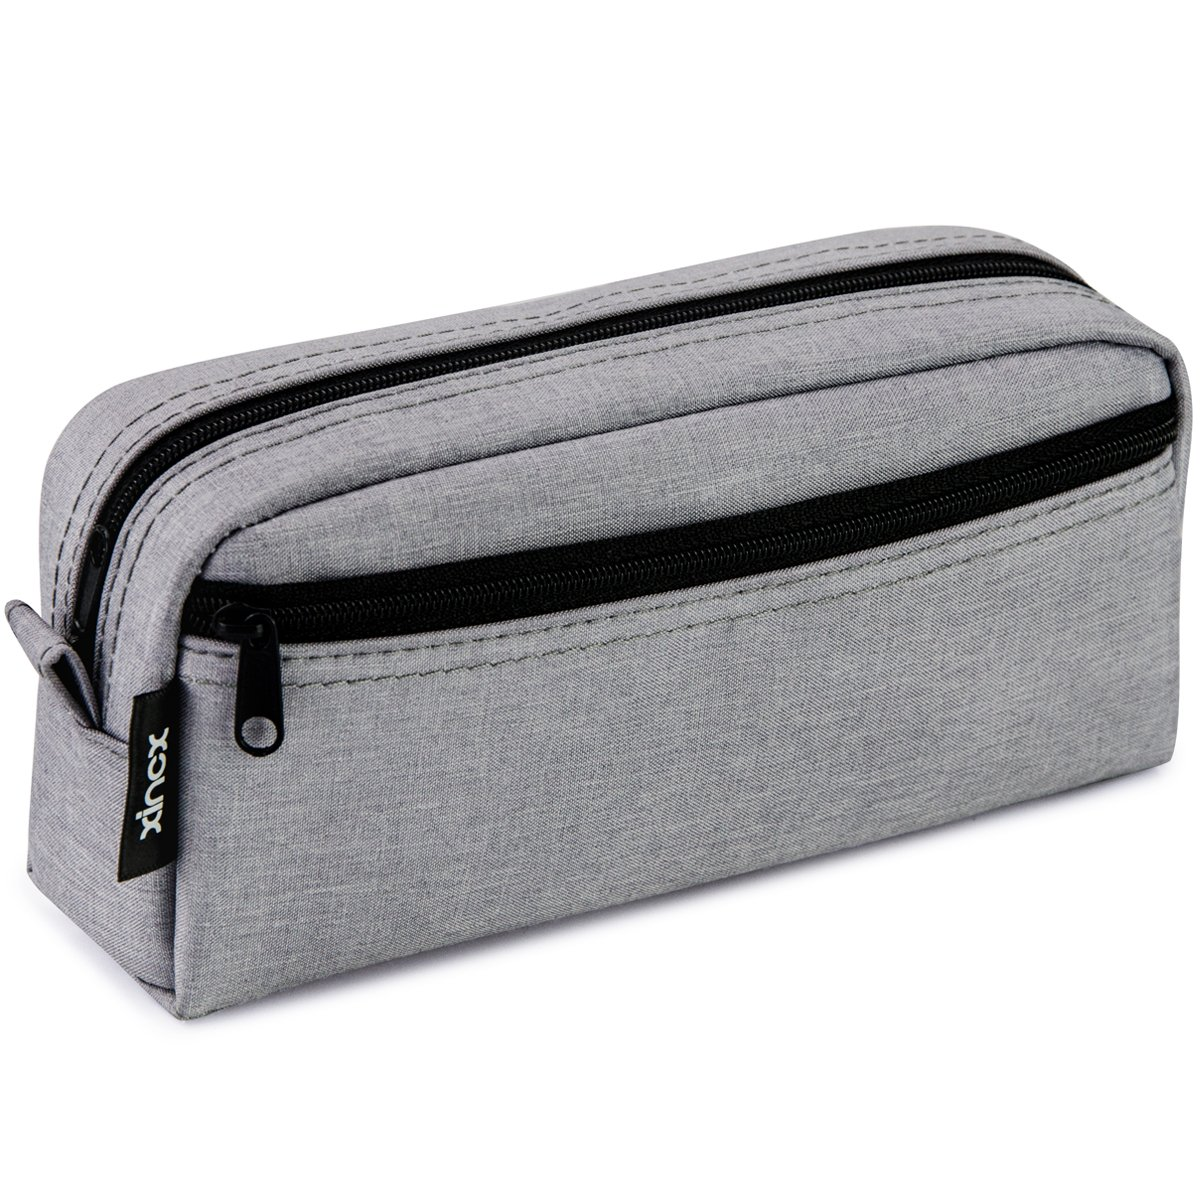 Big Capacity Pencil Case Stationery Pouch,Multi-Colored Pen Pouch,Cosmetic Pouch Bag, Pen Bag with Zipper Bag for Boy Girl (Light Gray)